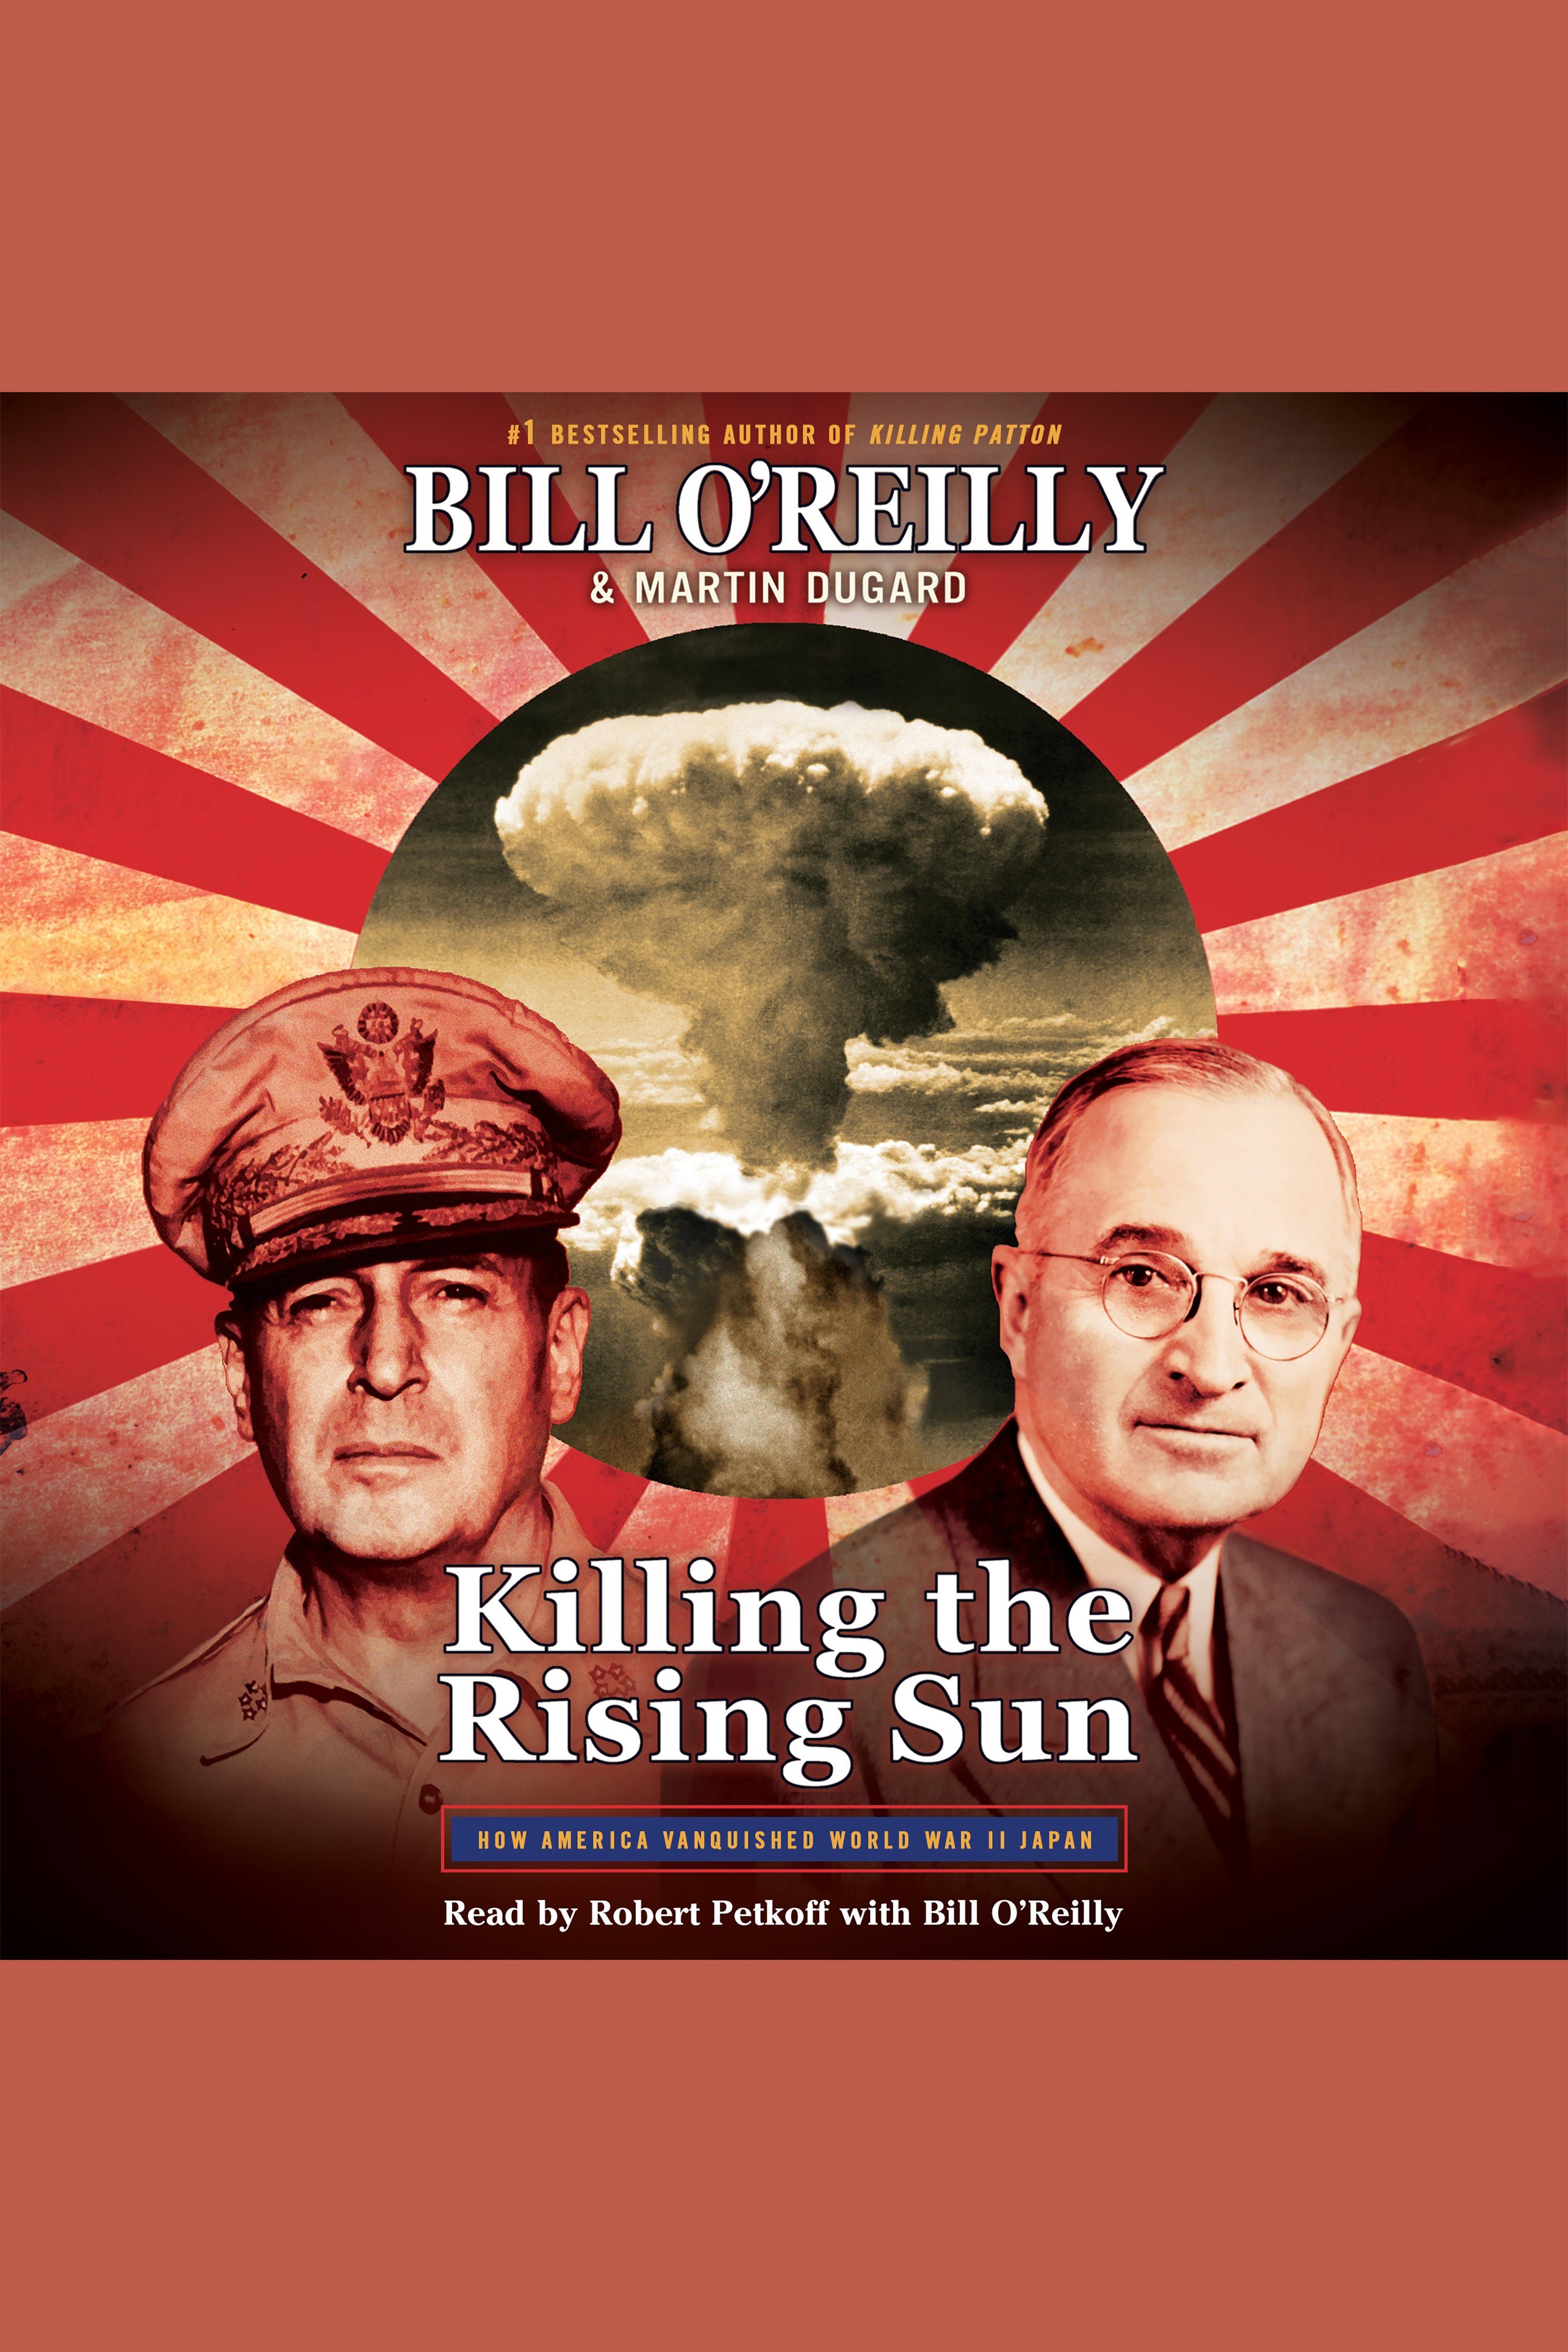 Killing the Rising Sun [AUDIO EBOOK] How America Vanquished World War II Japan